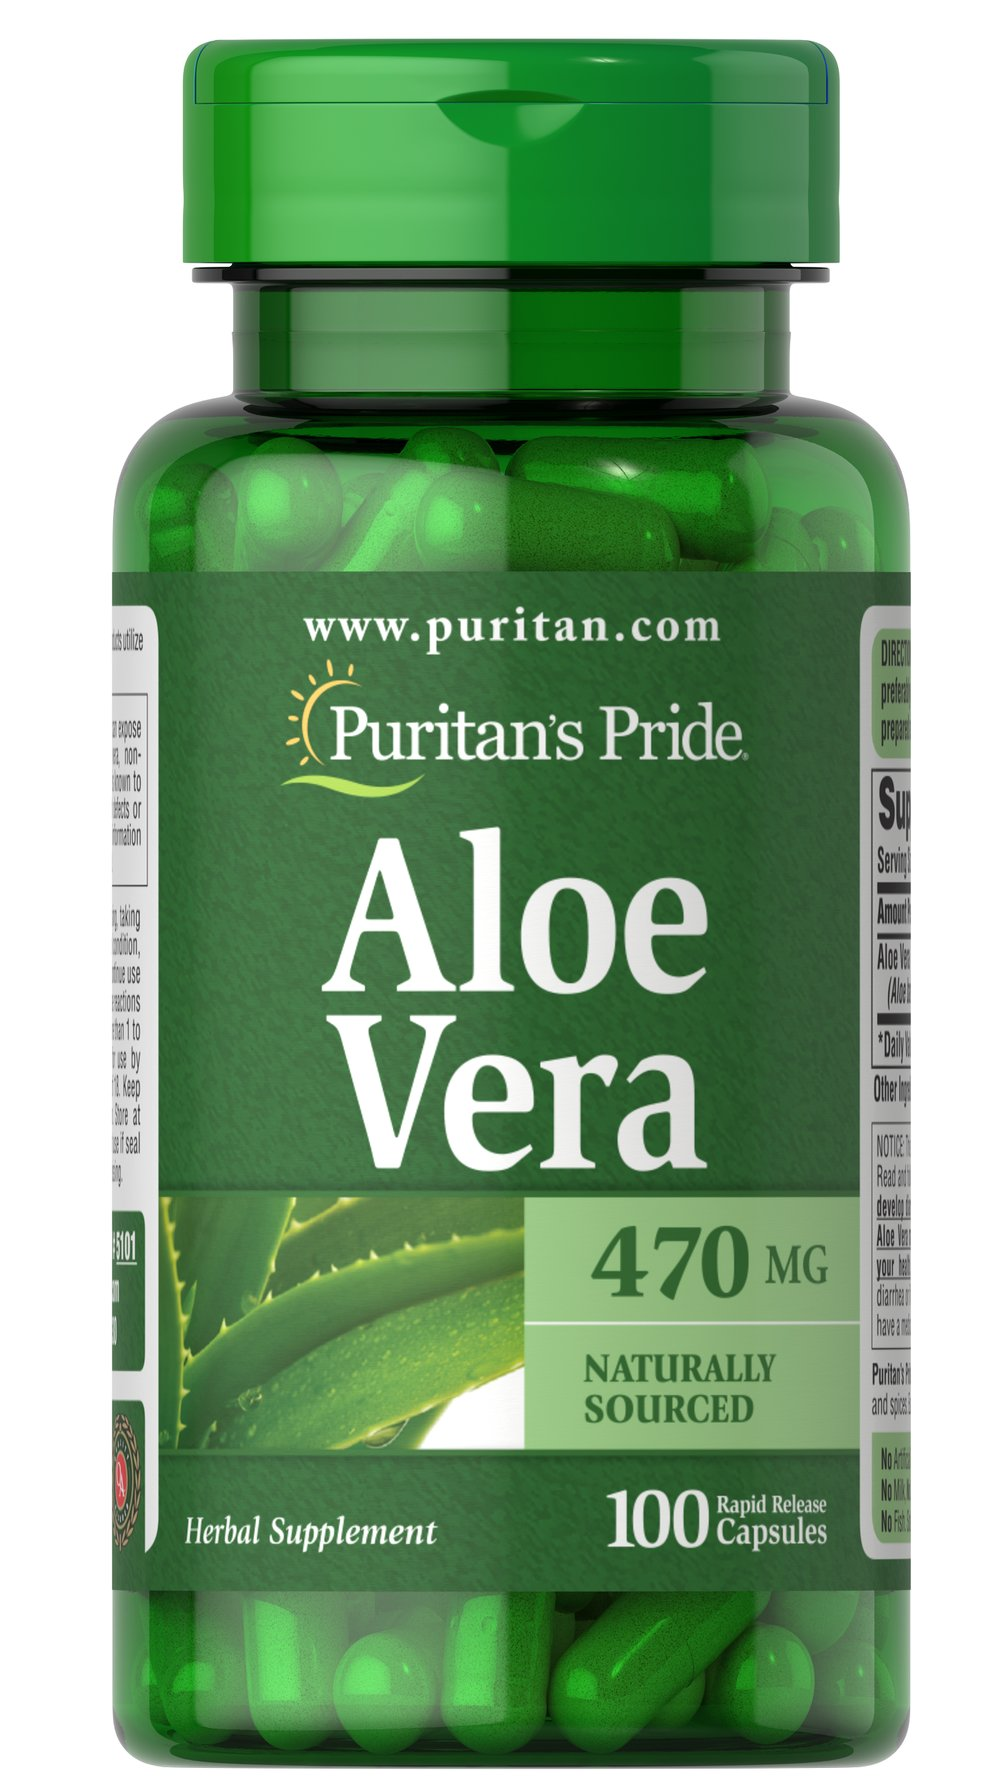 Aloe Vera 470 mg <p>Serves as an aid for healthy digestion**</p><p>Plays a role in the well-being of the body**</p><p>Convenience of capsules, softgels and liquids is unsurpassed</p><p>Has been used and trusted for centuries</p><p>Aloe Vera  has been shown to support a healthy digestive system.** Its popularity as a digestive aid makes it an excellent addition to your daily eating plan.**</p> 100 Capsules 470 mg $9.83